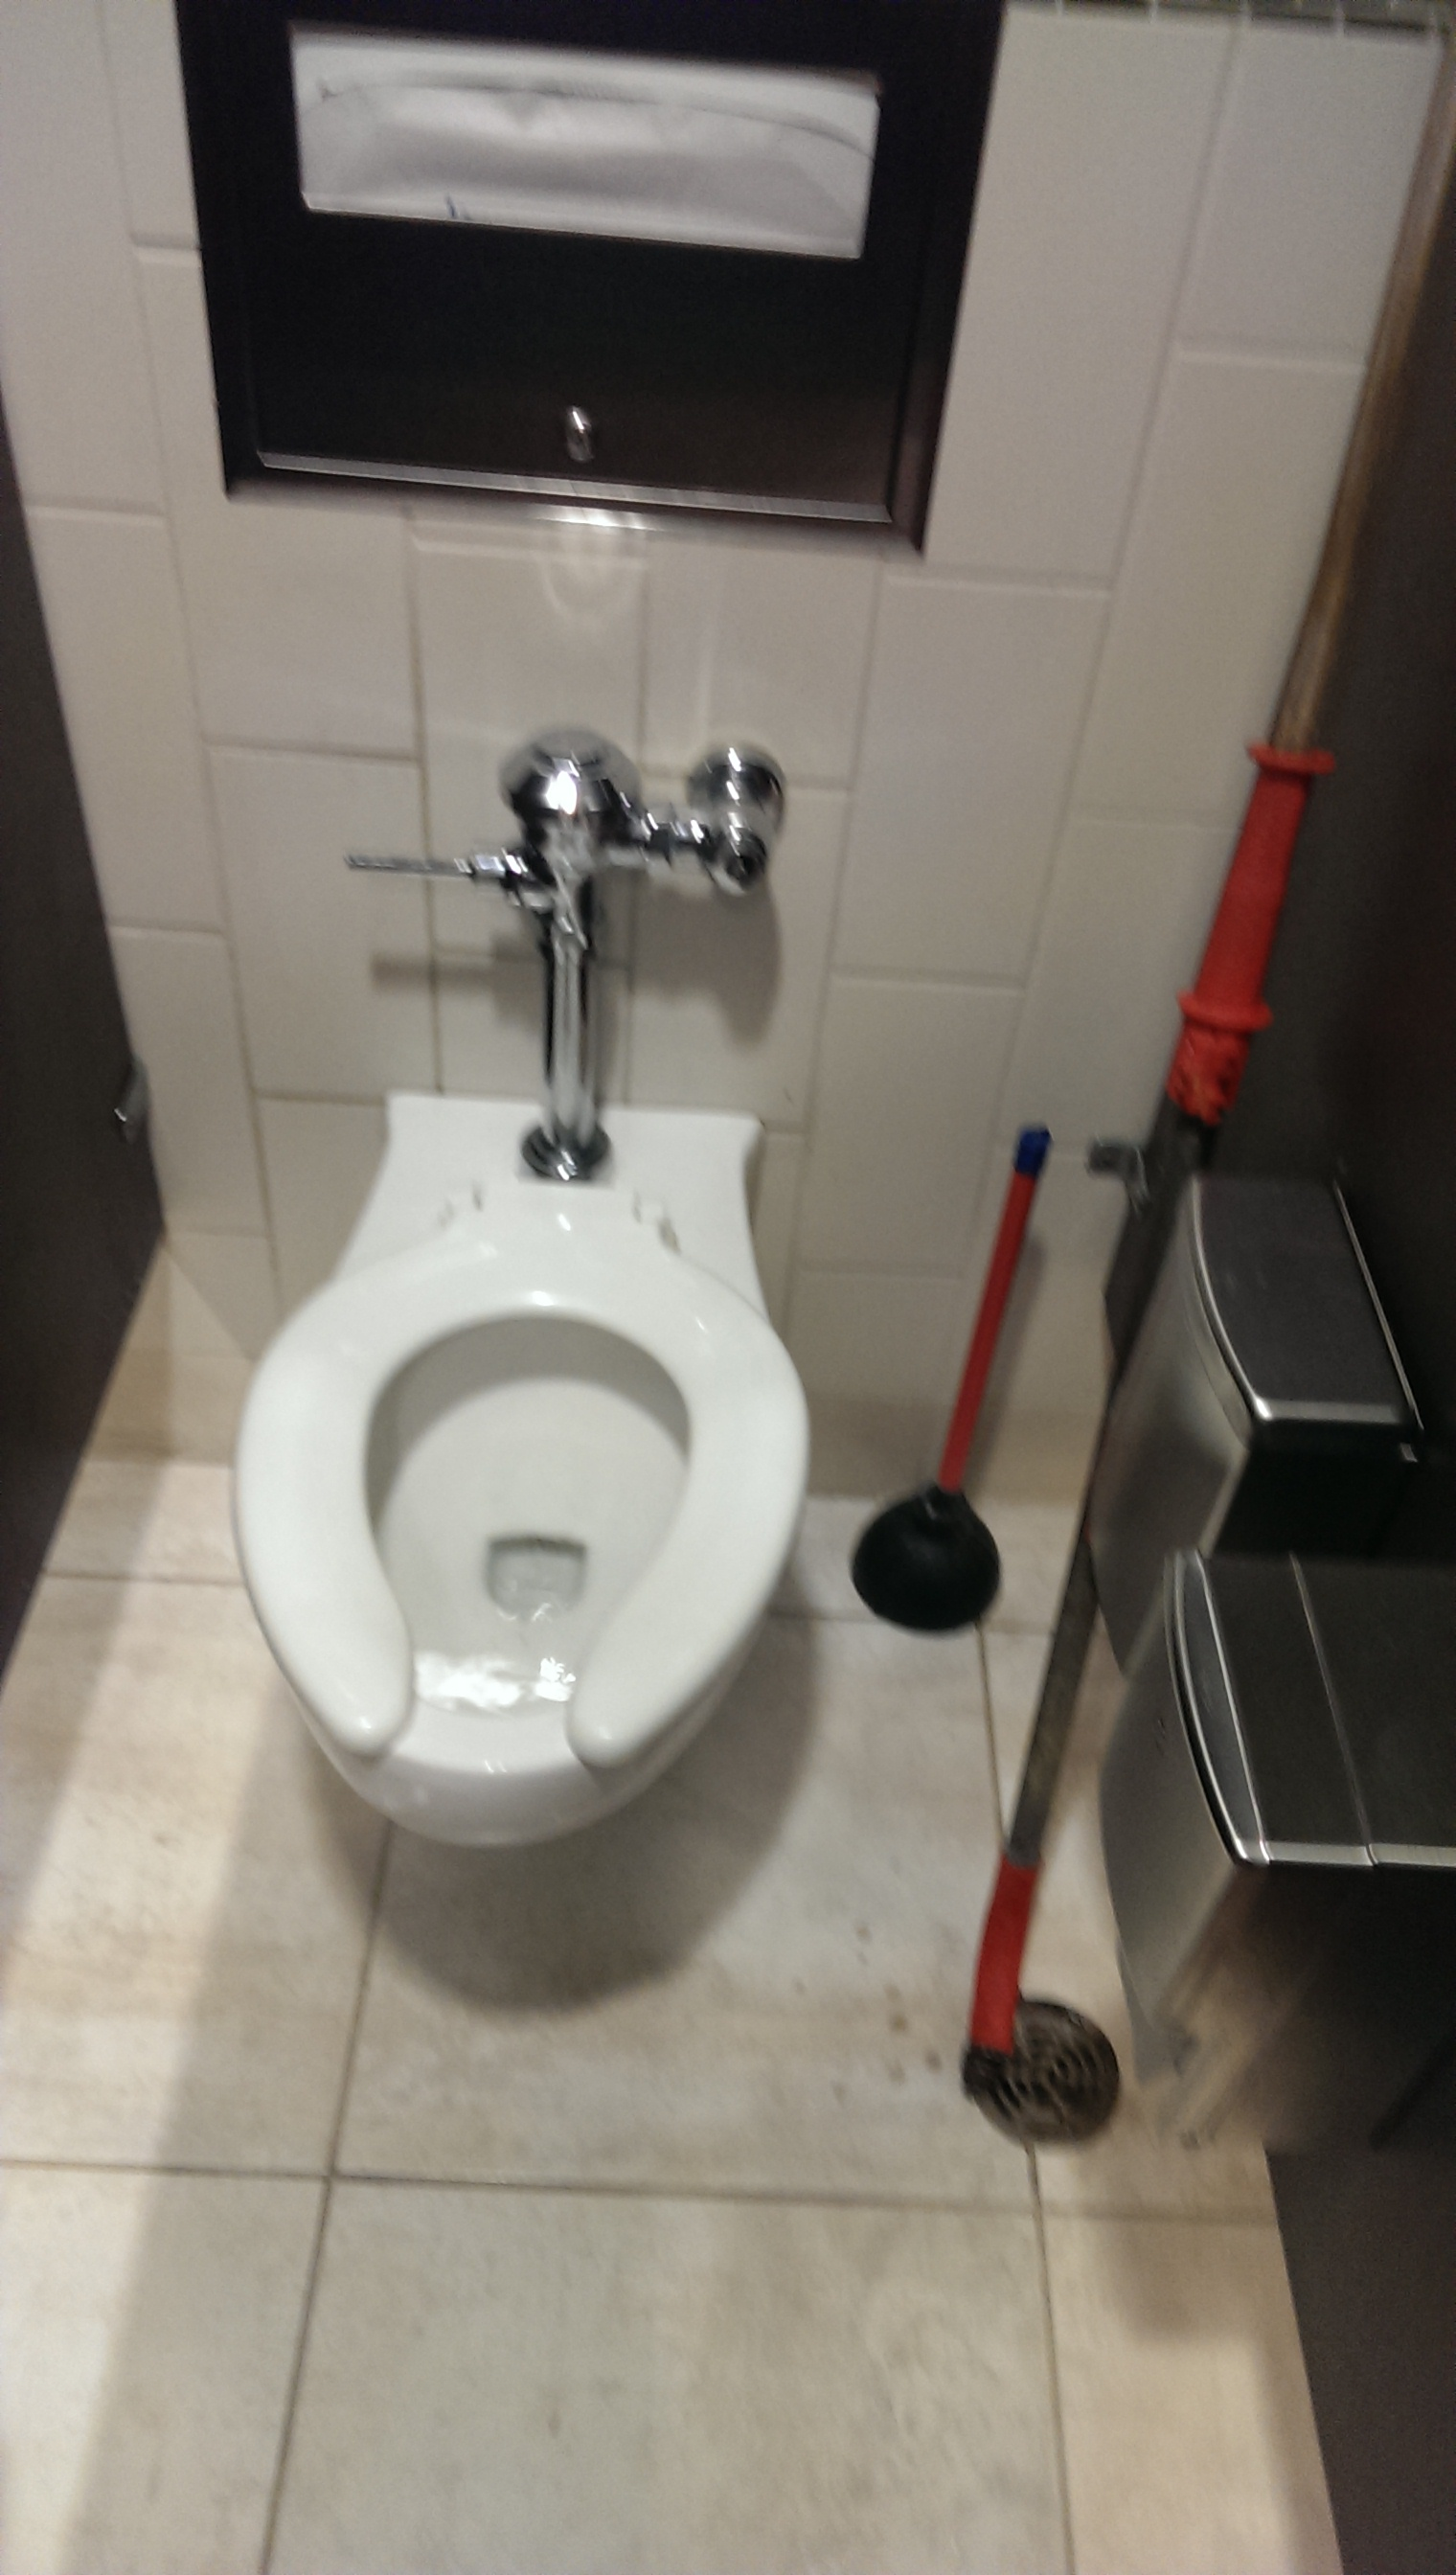 Toilet Leaking Minneapolis Plumbing Plumbers Mn St Paul Plumbers Minneapolis Drain